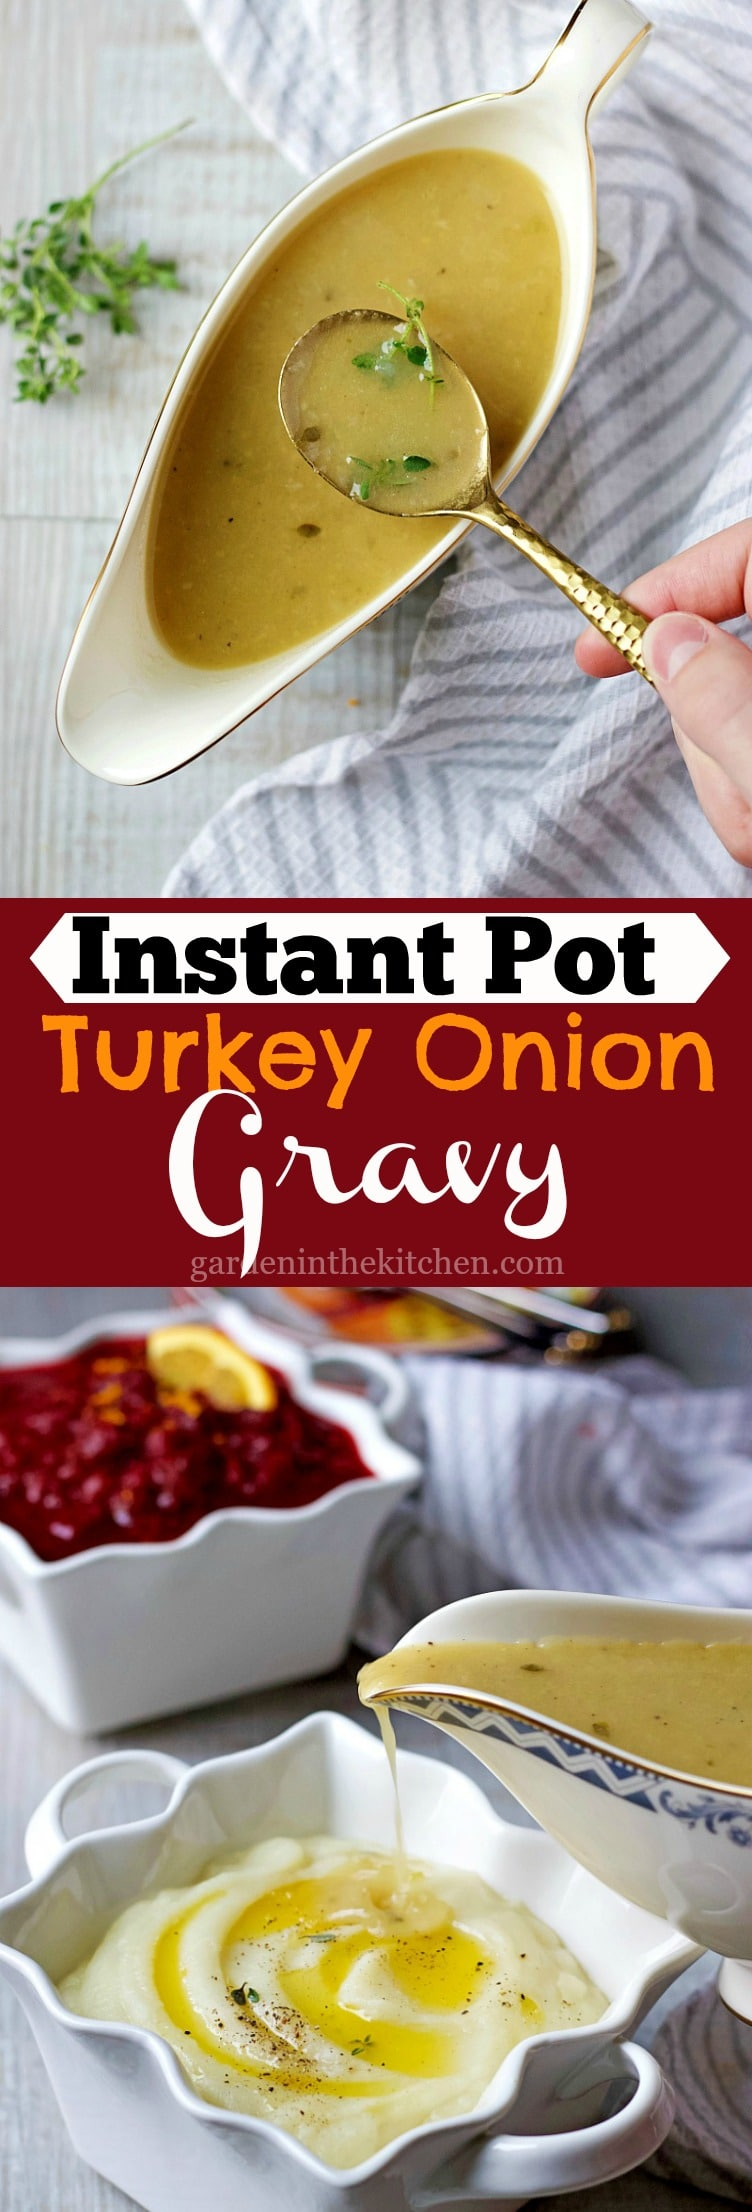 Instant Pot Turkey Onion Gravy